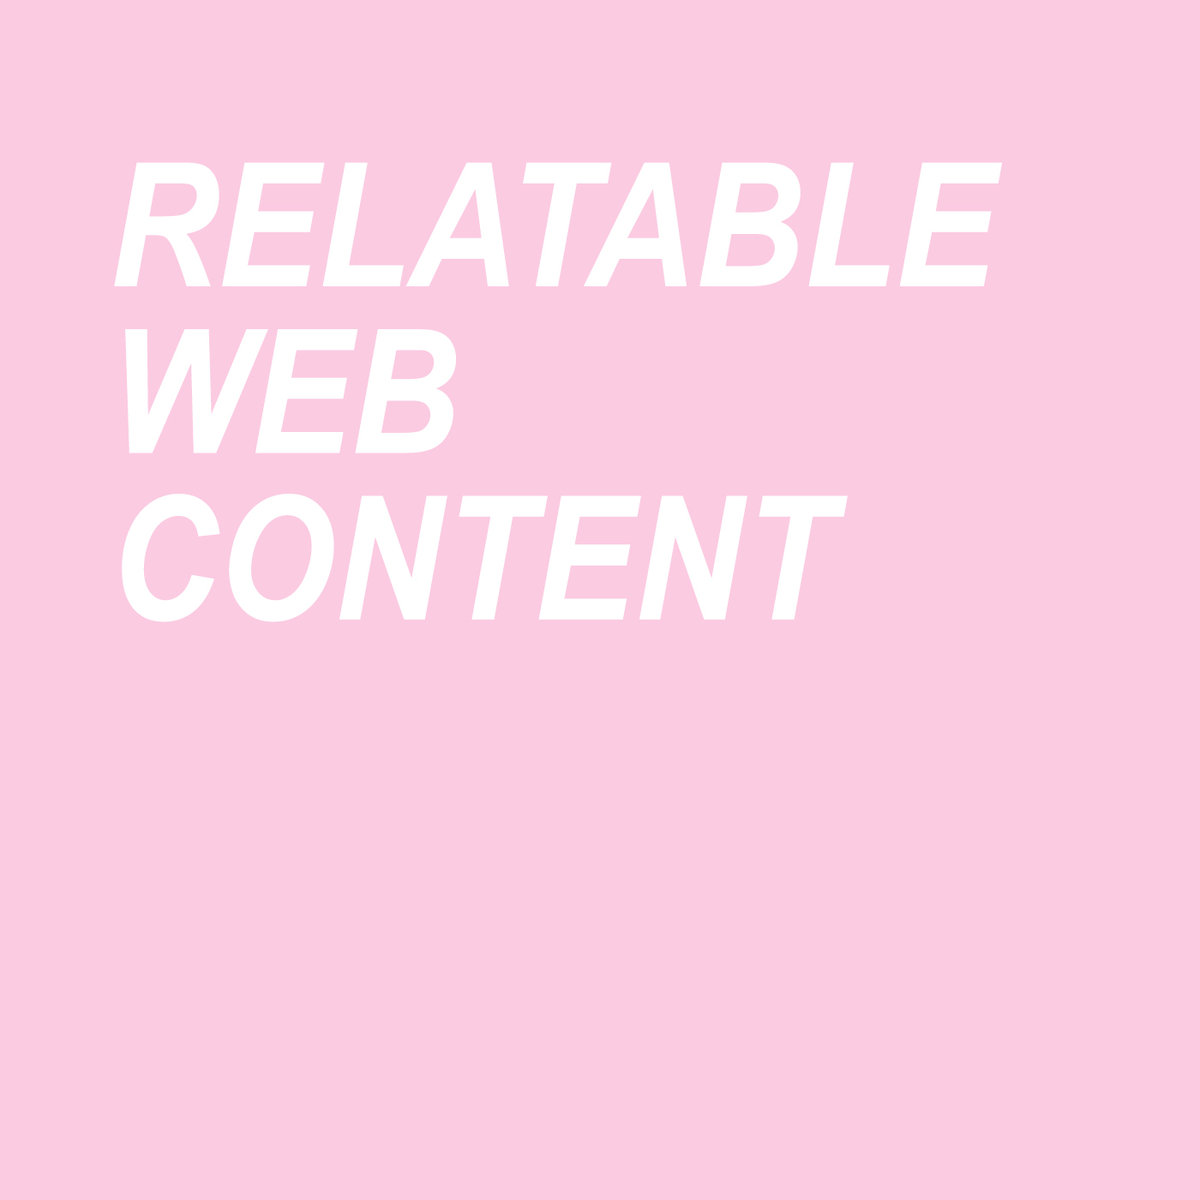 coping skills relatable web content album art